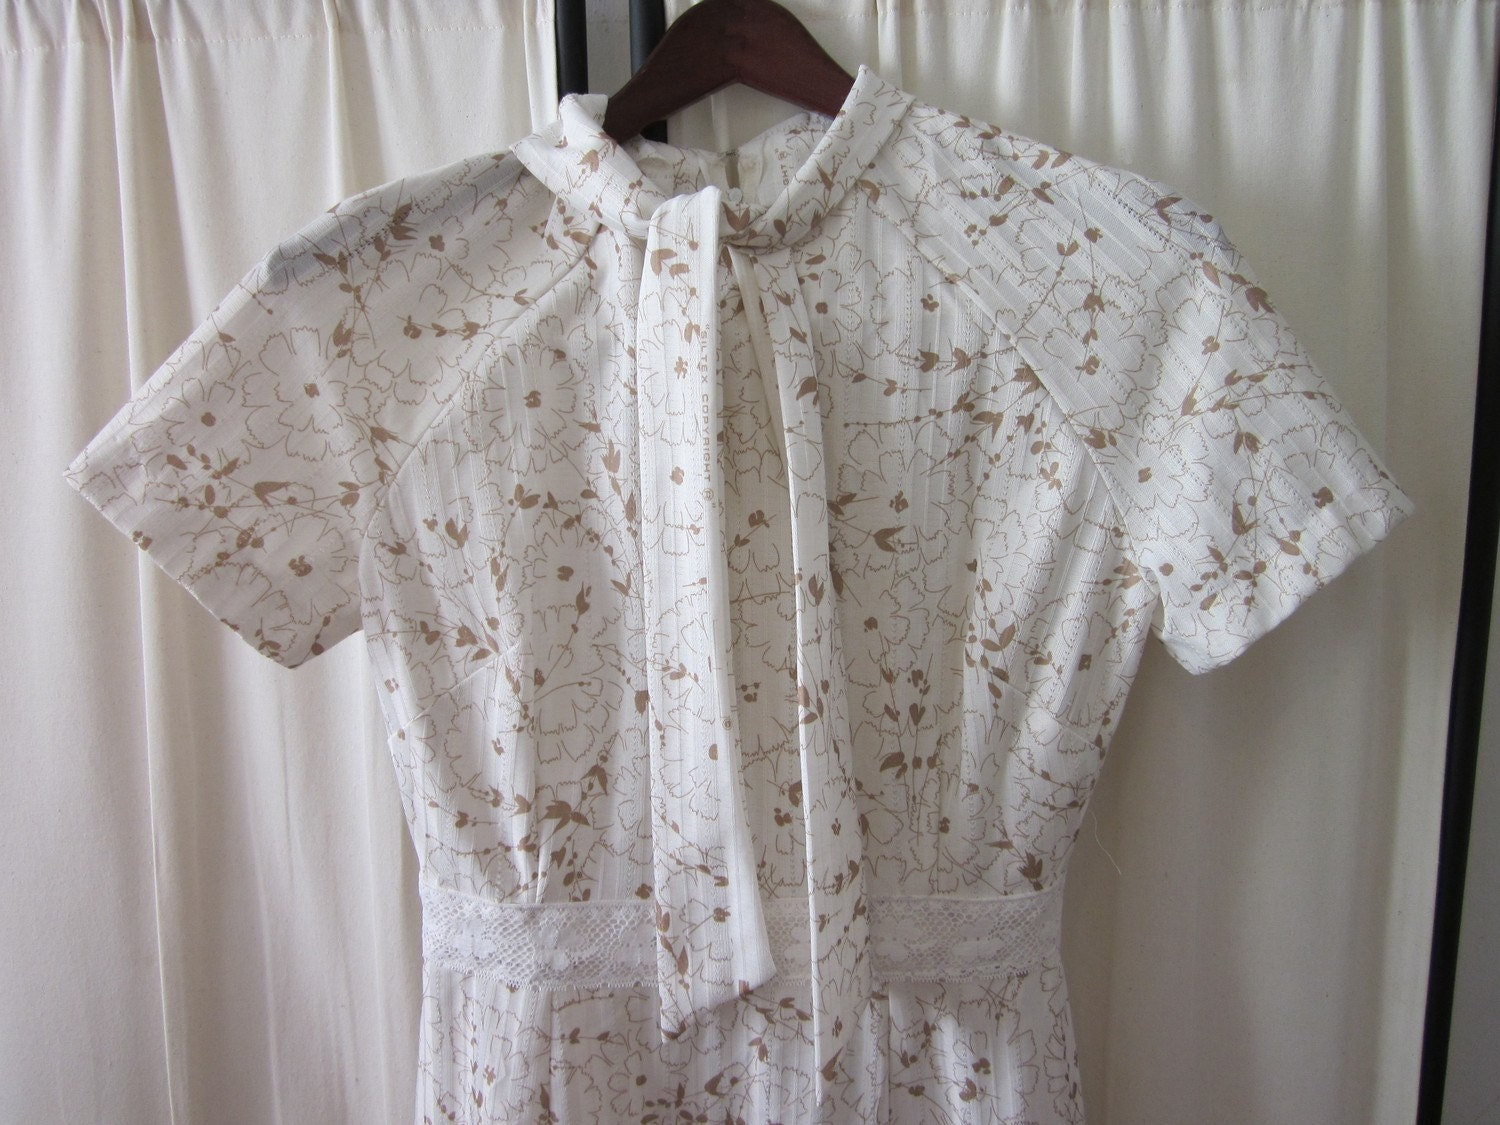 Vintage 60s White and Gold Floral Pattern Dress (S)